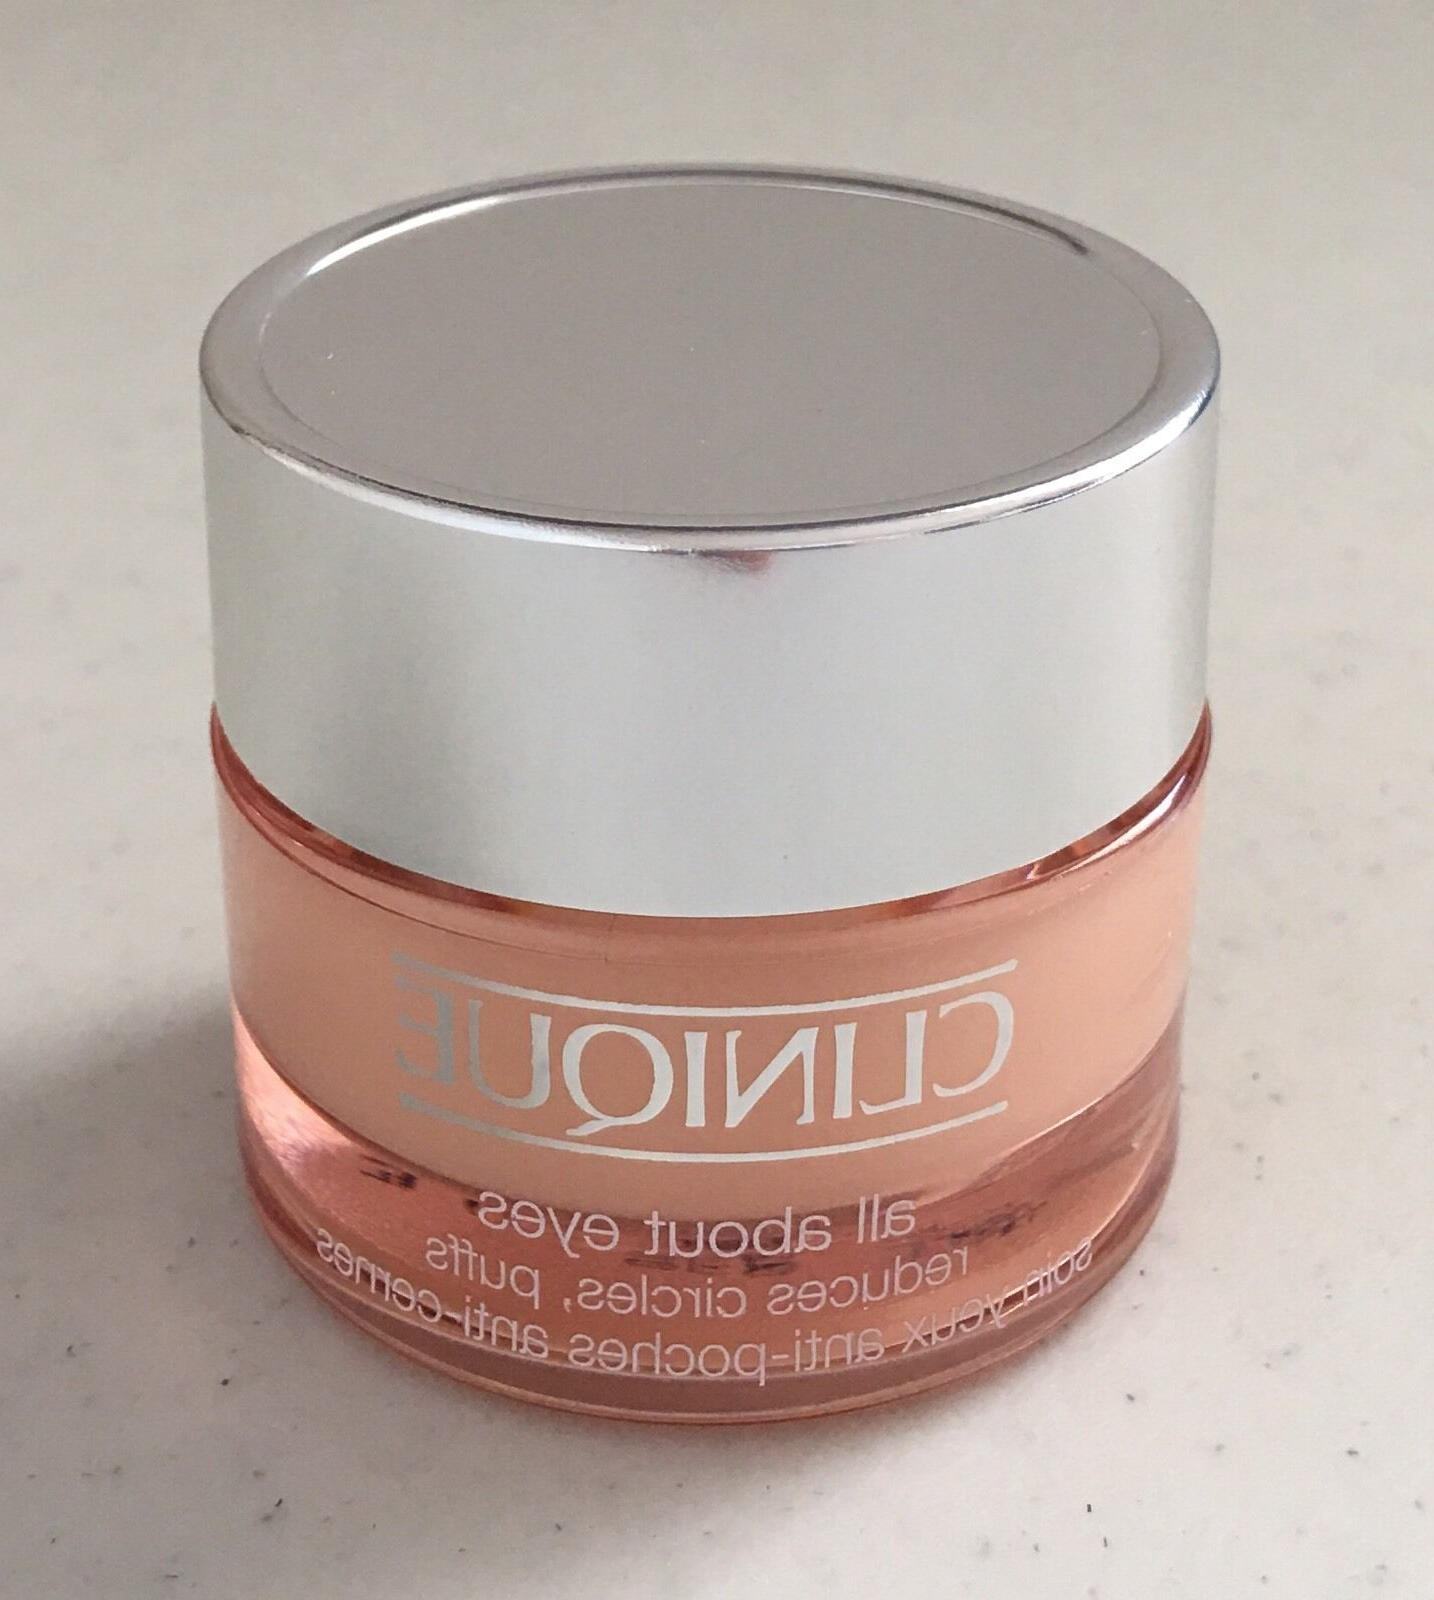 Clinique All About Eyes reduces circles, puffs Eye Cream 0.5